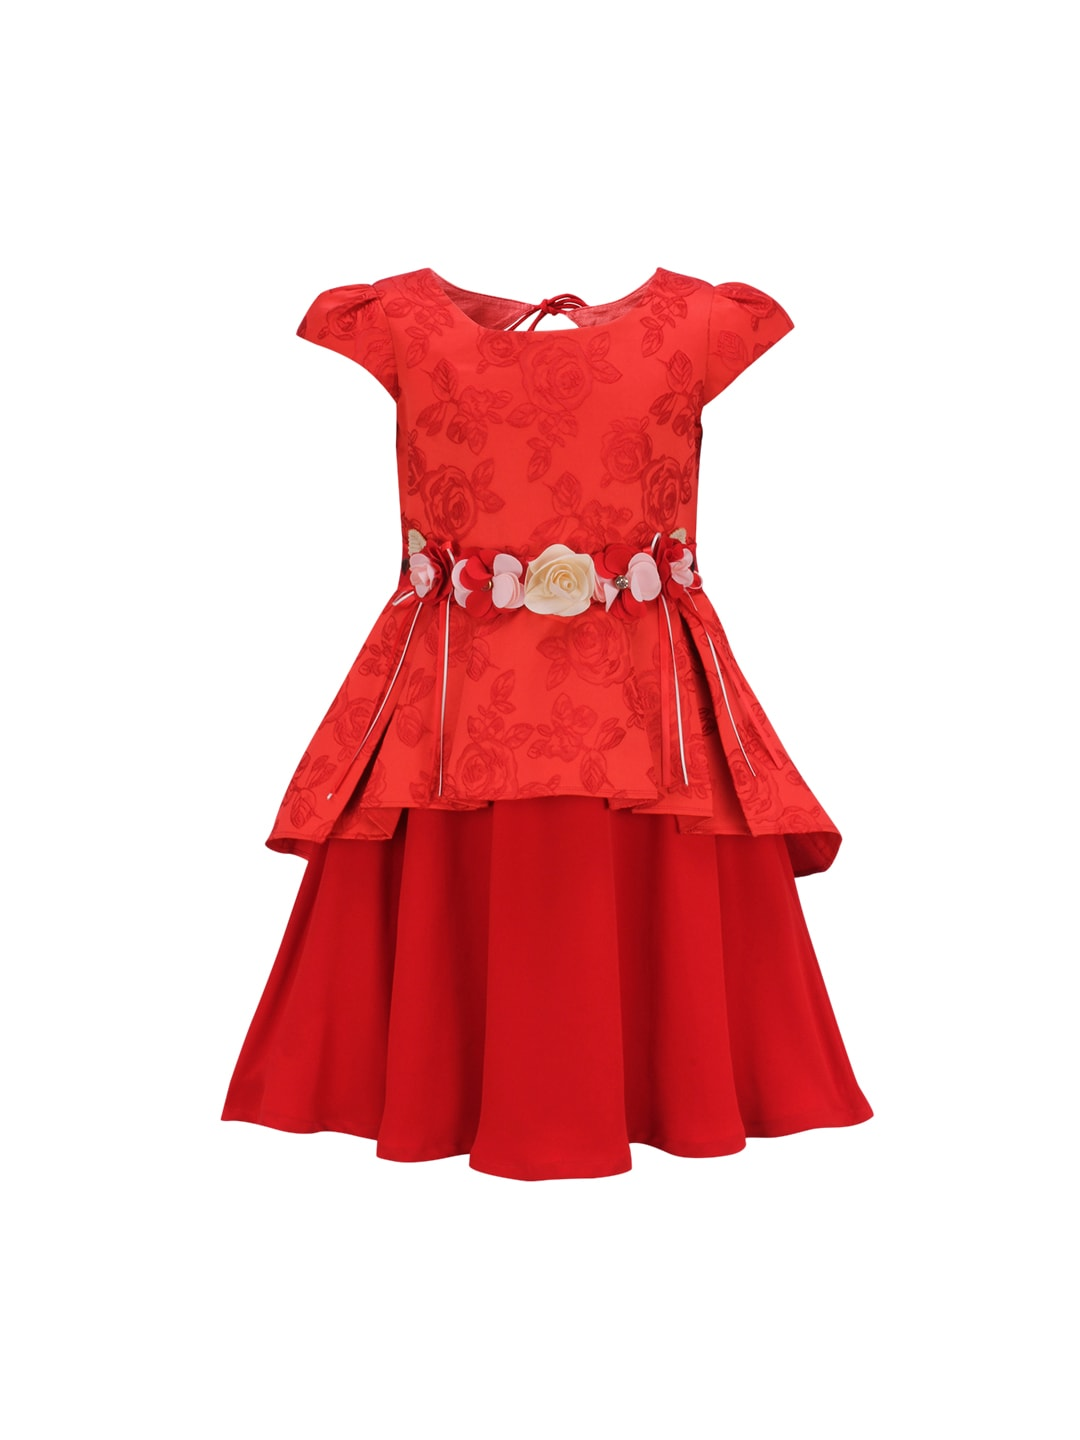 1d7f2fad3a9 Boys Girls Party - Buy Boys Girls Party online in India